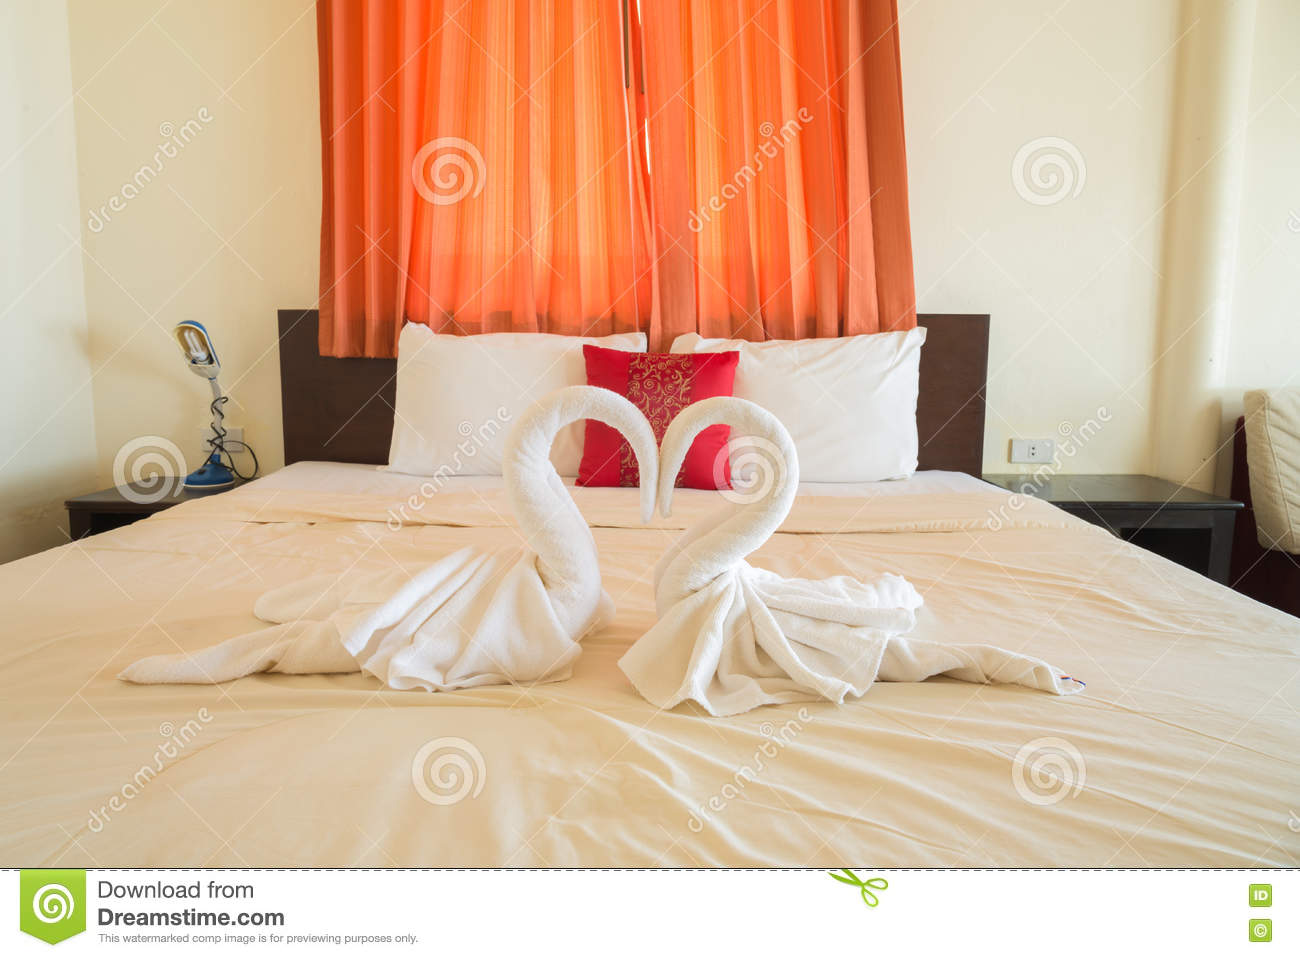 Tropical Bedroom Interior With Double Bed Stock Photo Image Of Resort Pillow 73673552